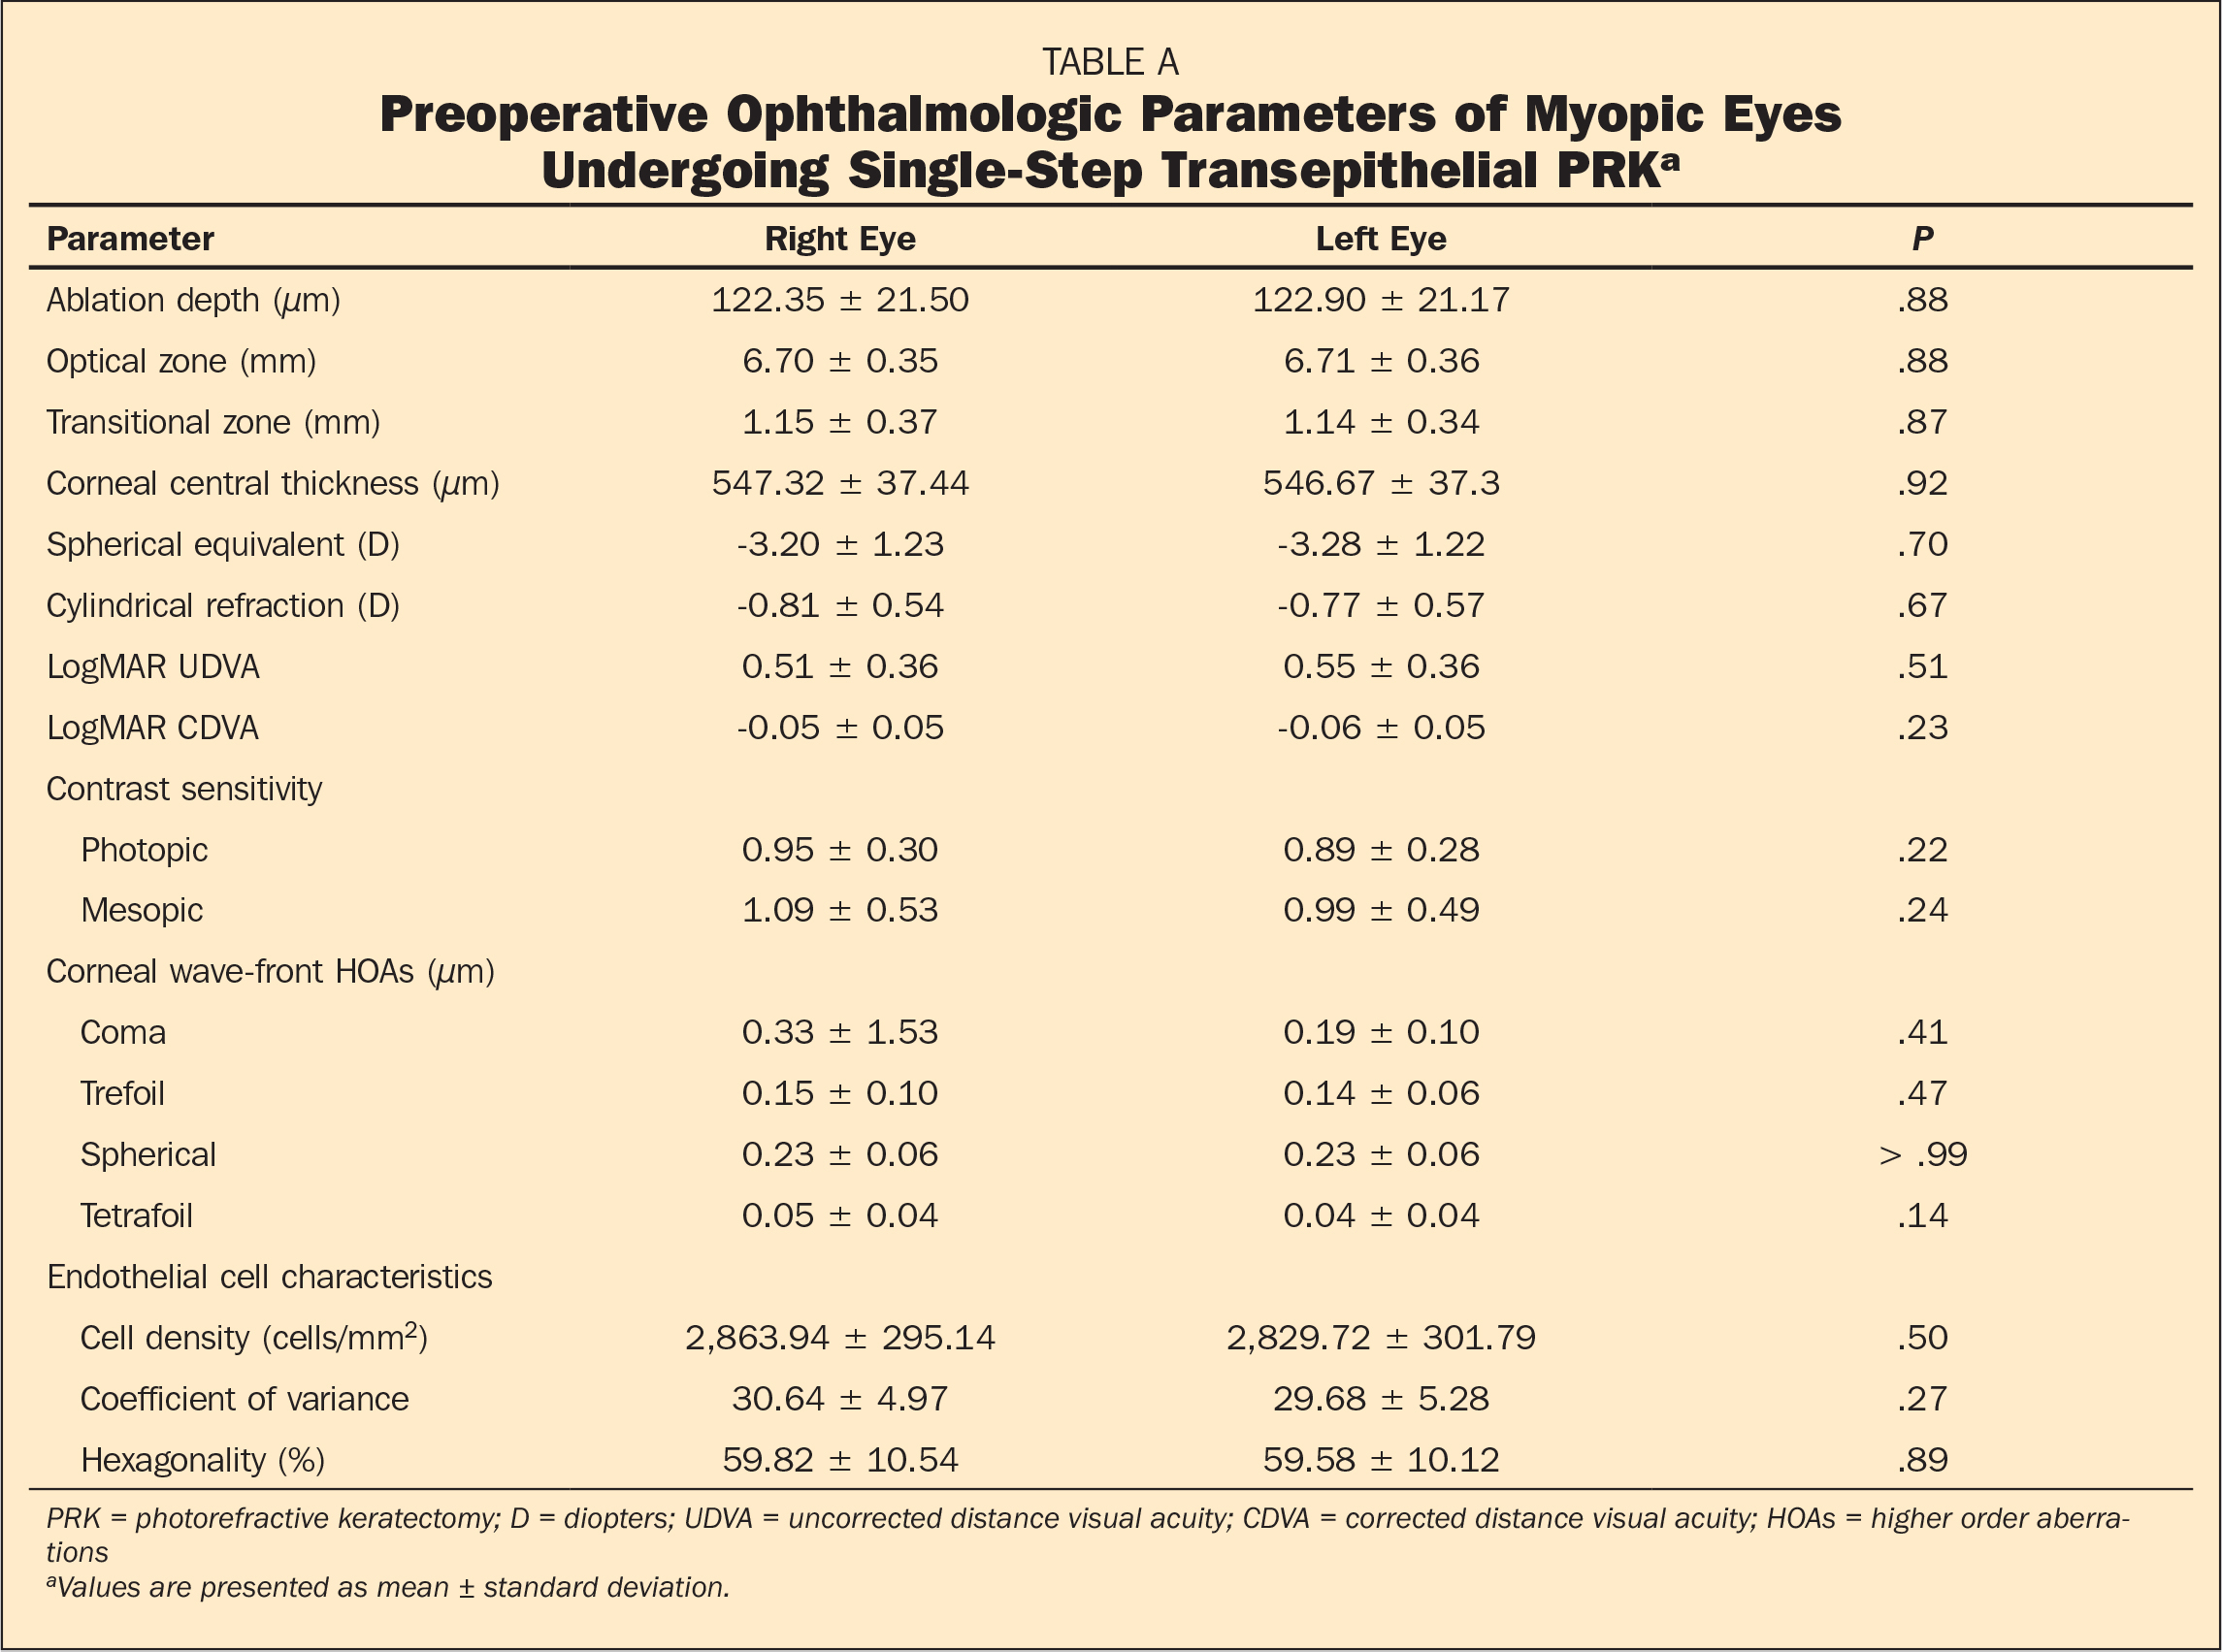 Preoperative Ophthalmologic Parameters of Myopic Eyes Undergoing Single-Step Transepithelial PRKa